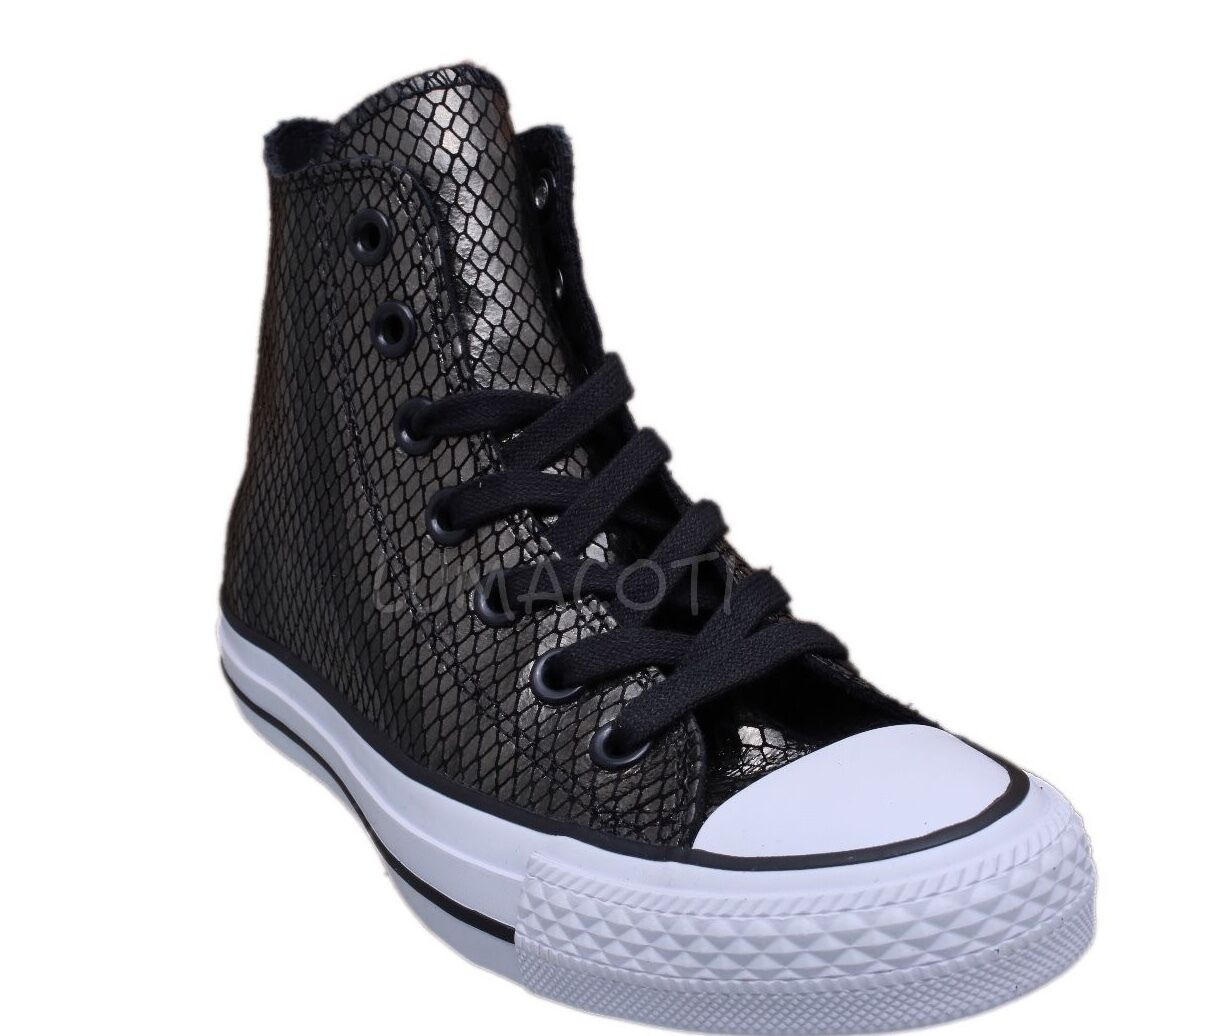 Womens Converse Chuck Taylor All Star Black/White Hi Top Sneakers [555966C]